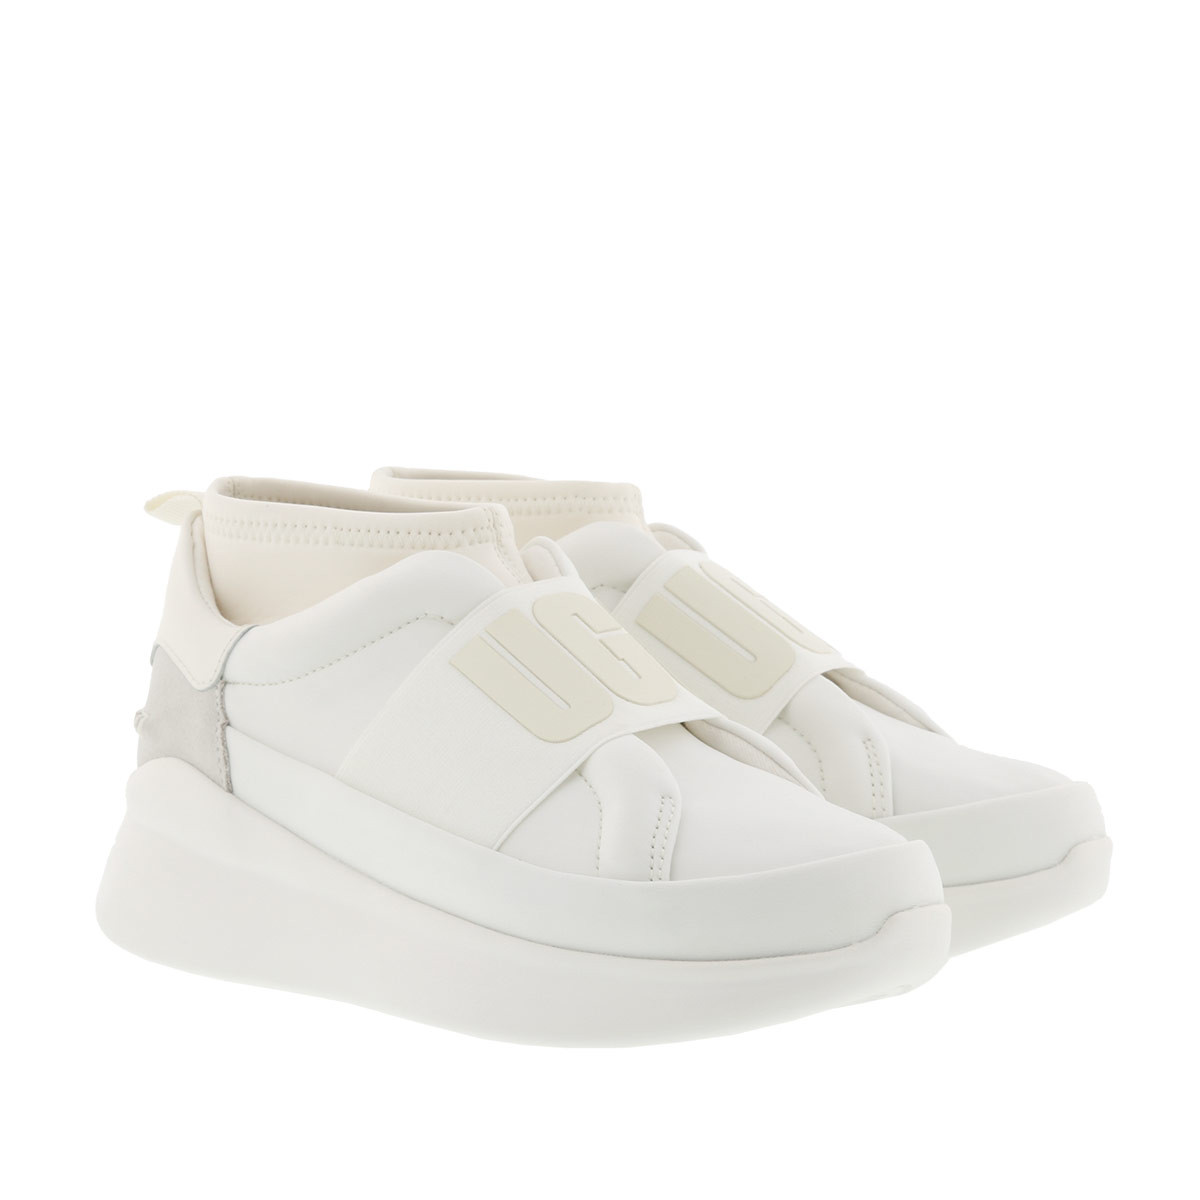 UGG Sneakers - W Neutra Sneaker Coconut Milk - in weiß - für Damen